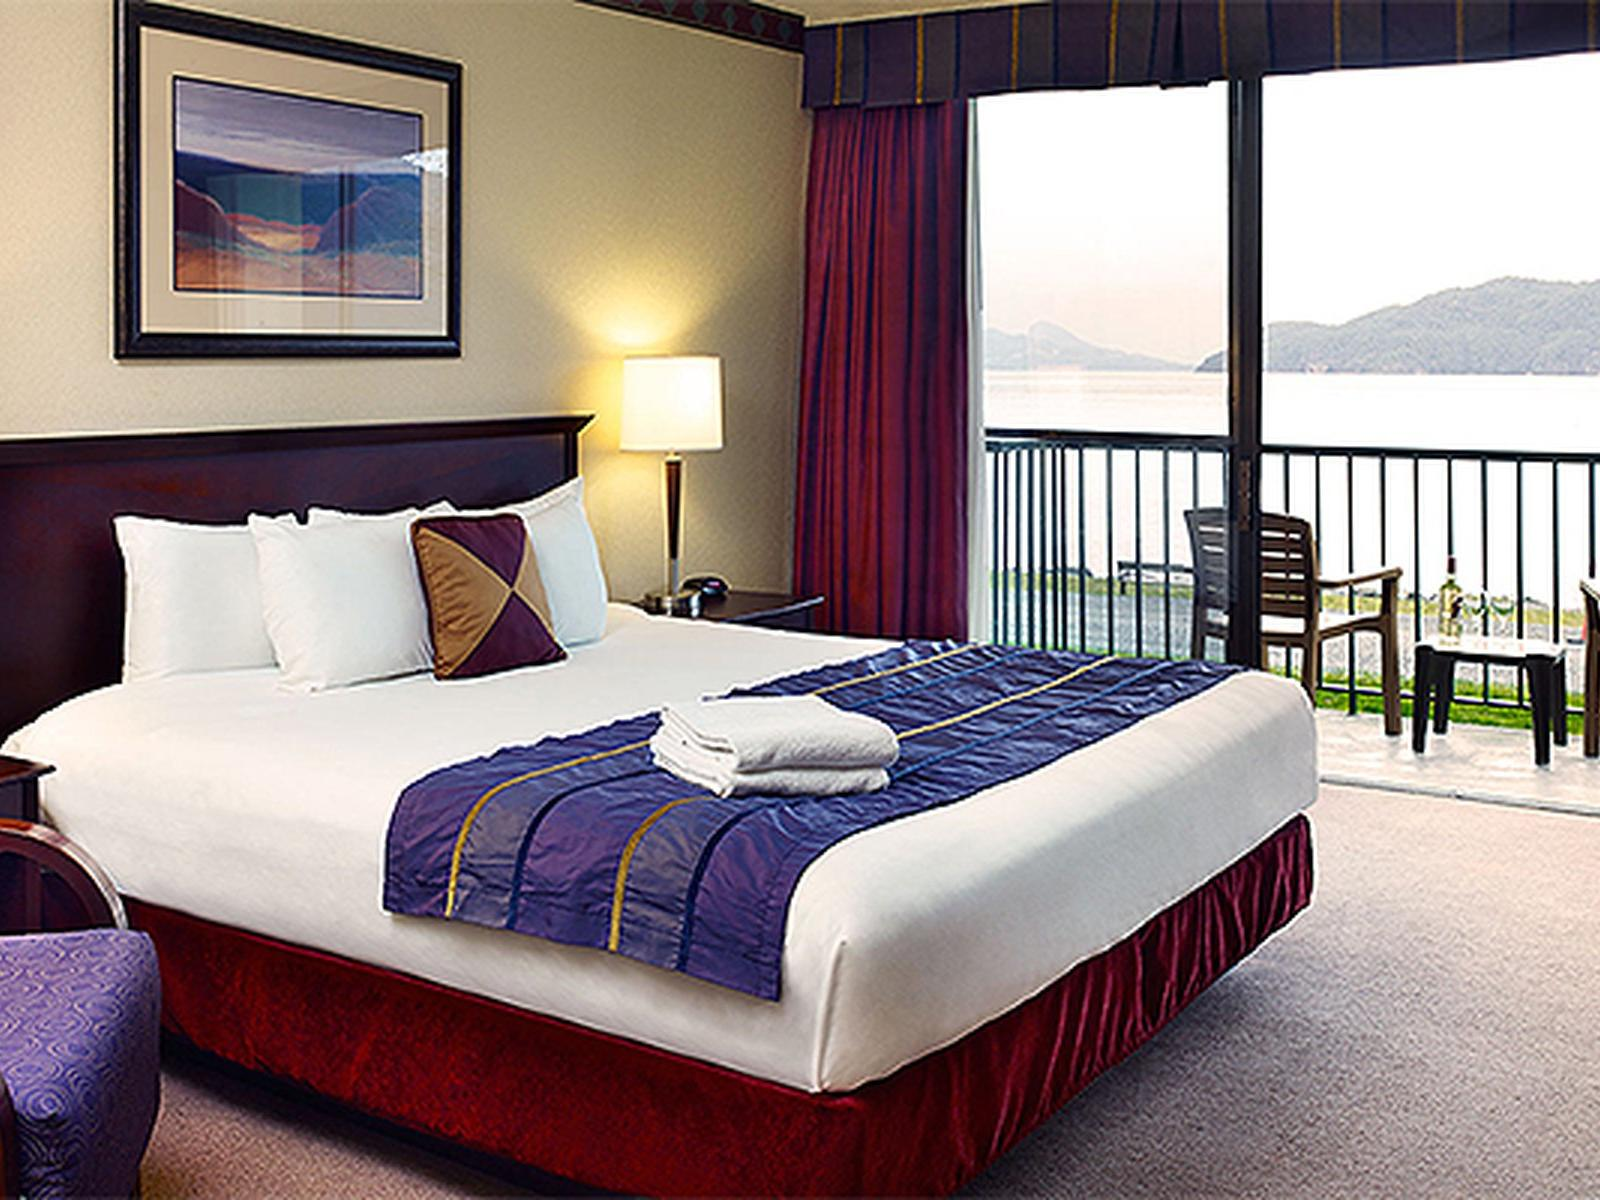 bed in hotel room with balcony overlooking ocean